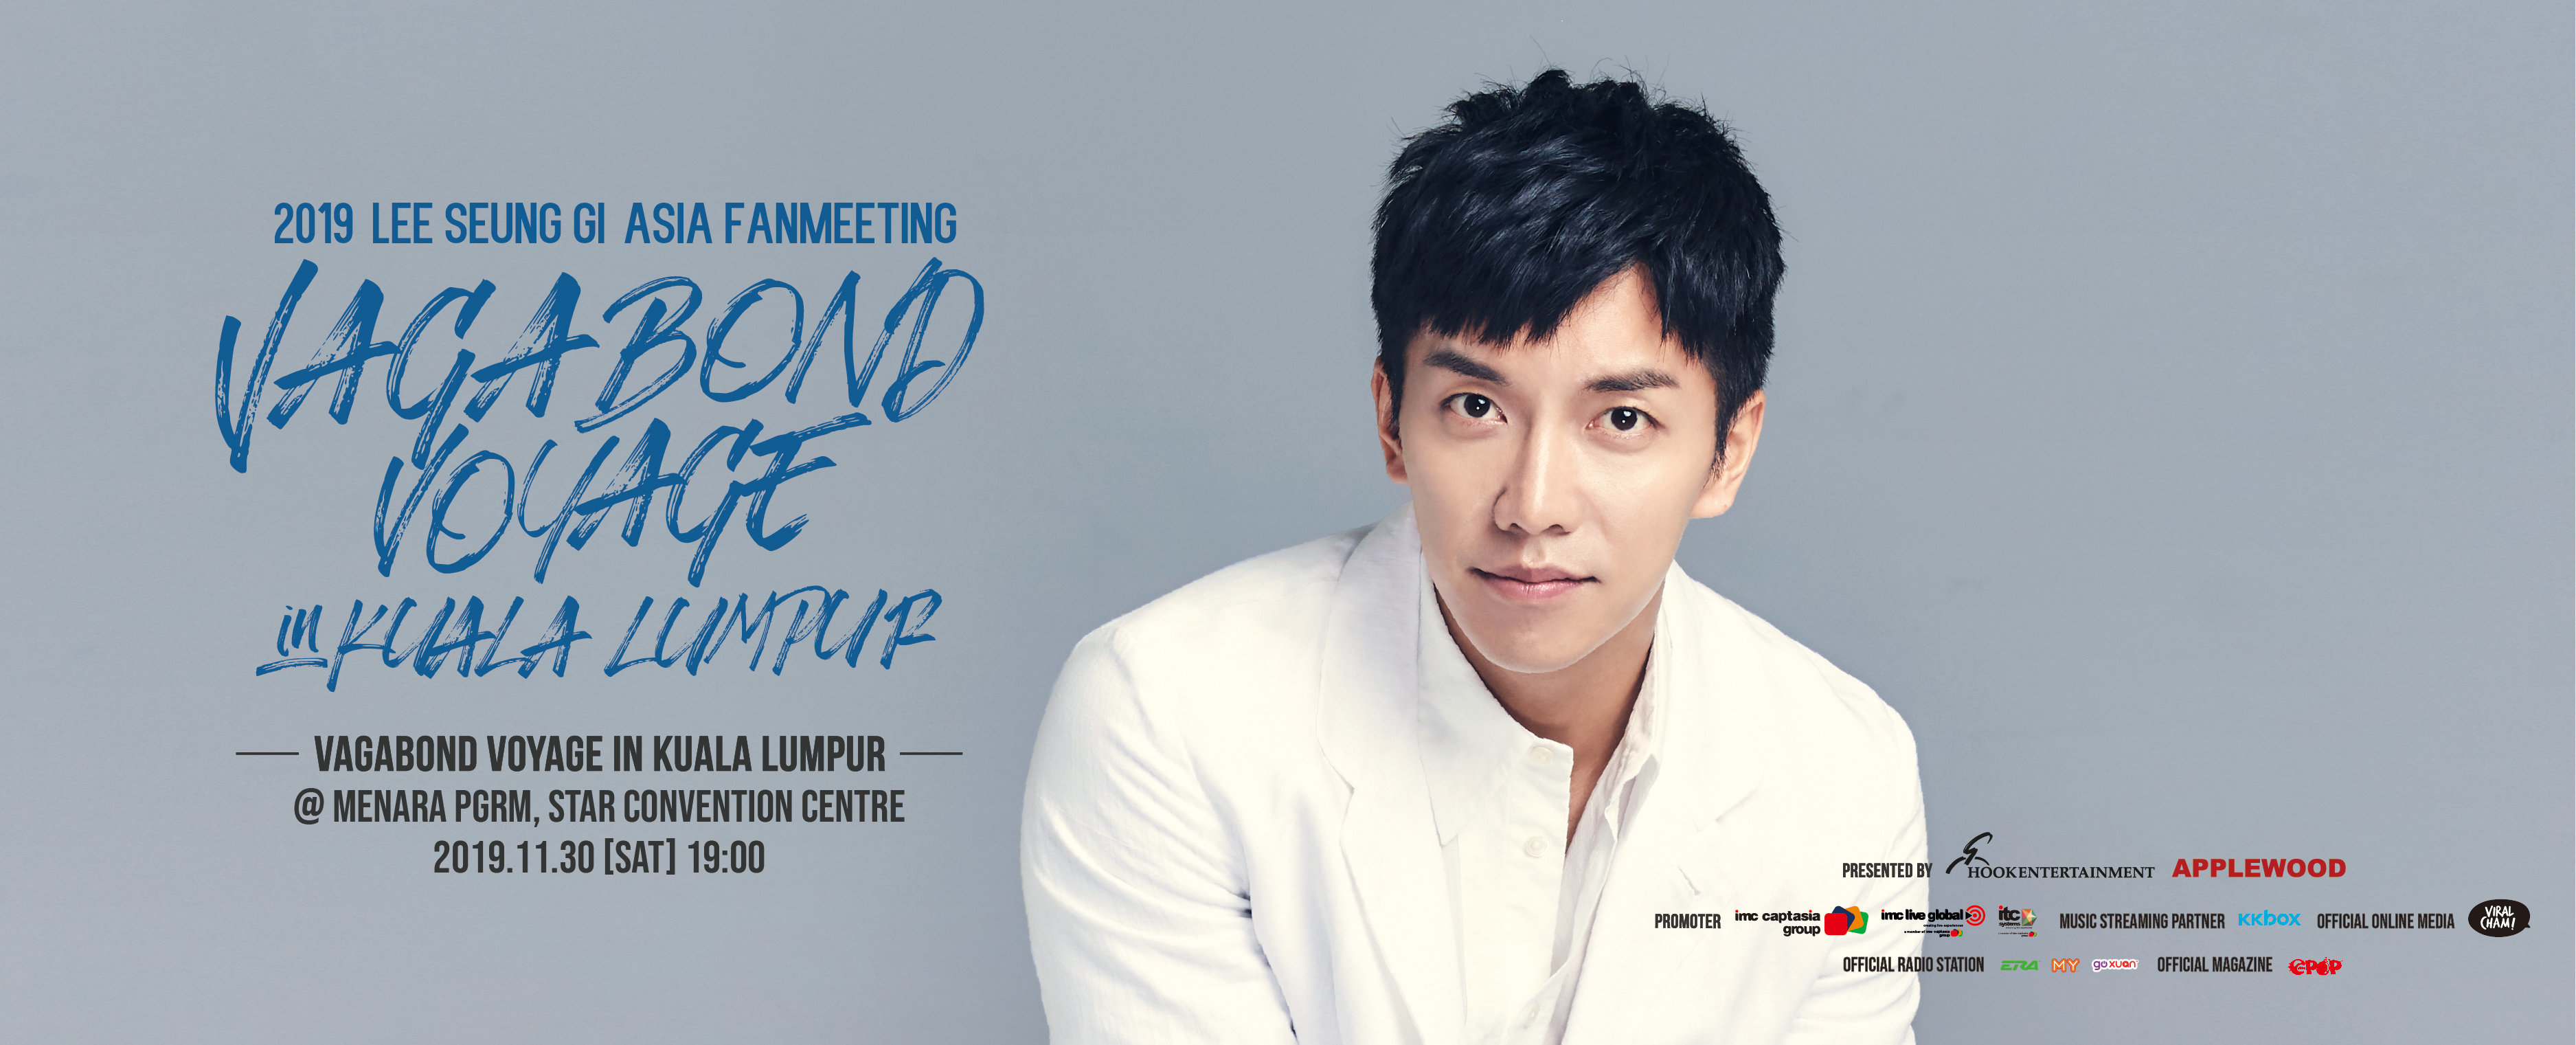 EVENT | Lee Seung Gi Fanmeeting in KL